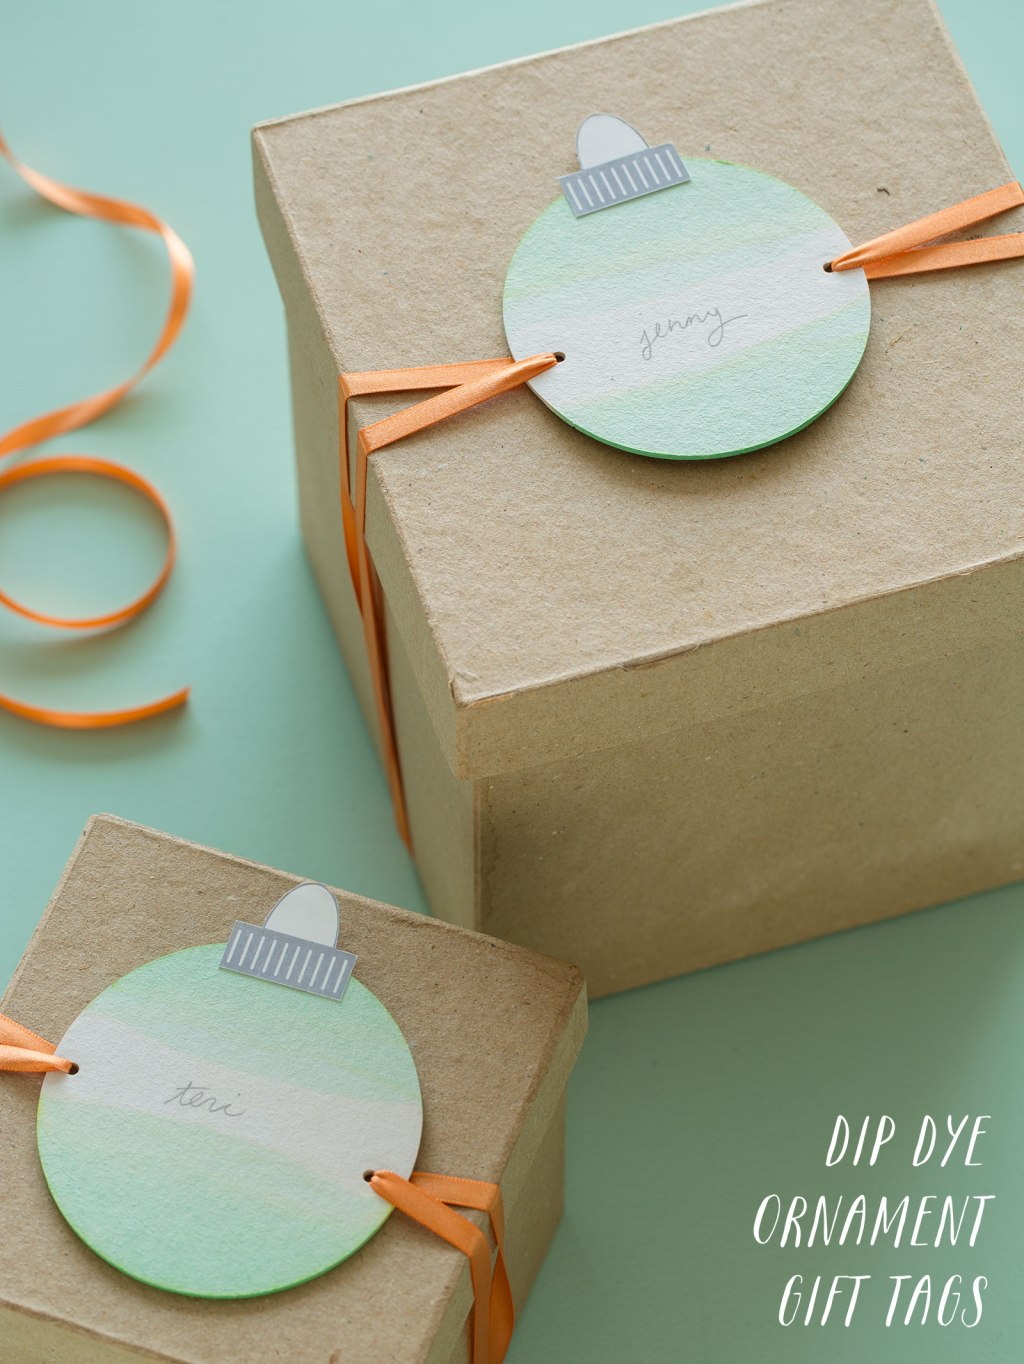 ornament_gift_tags-1